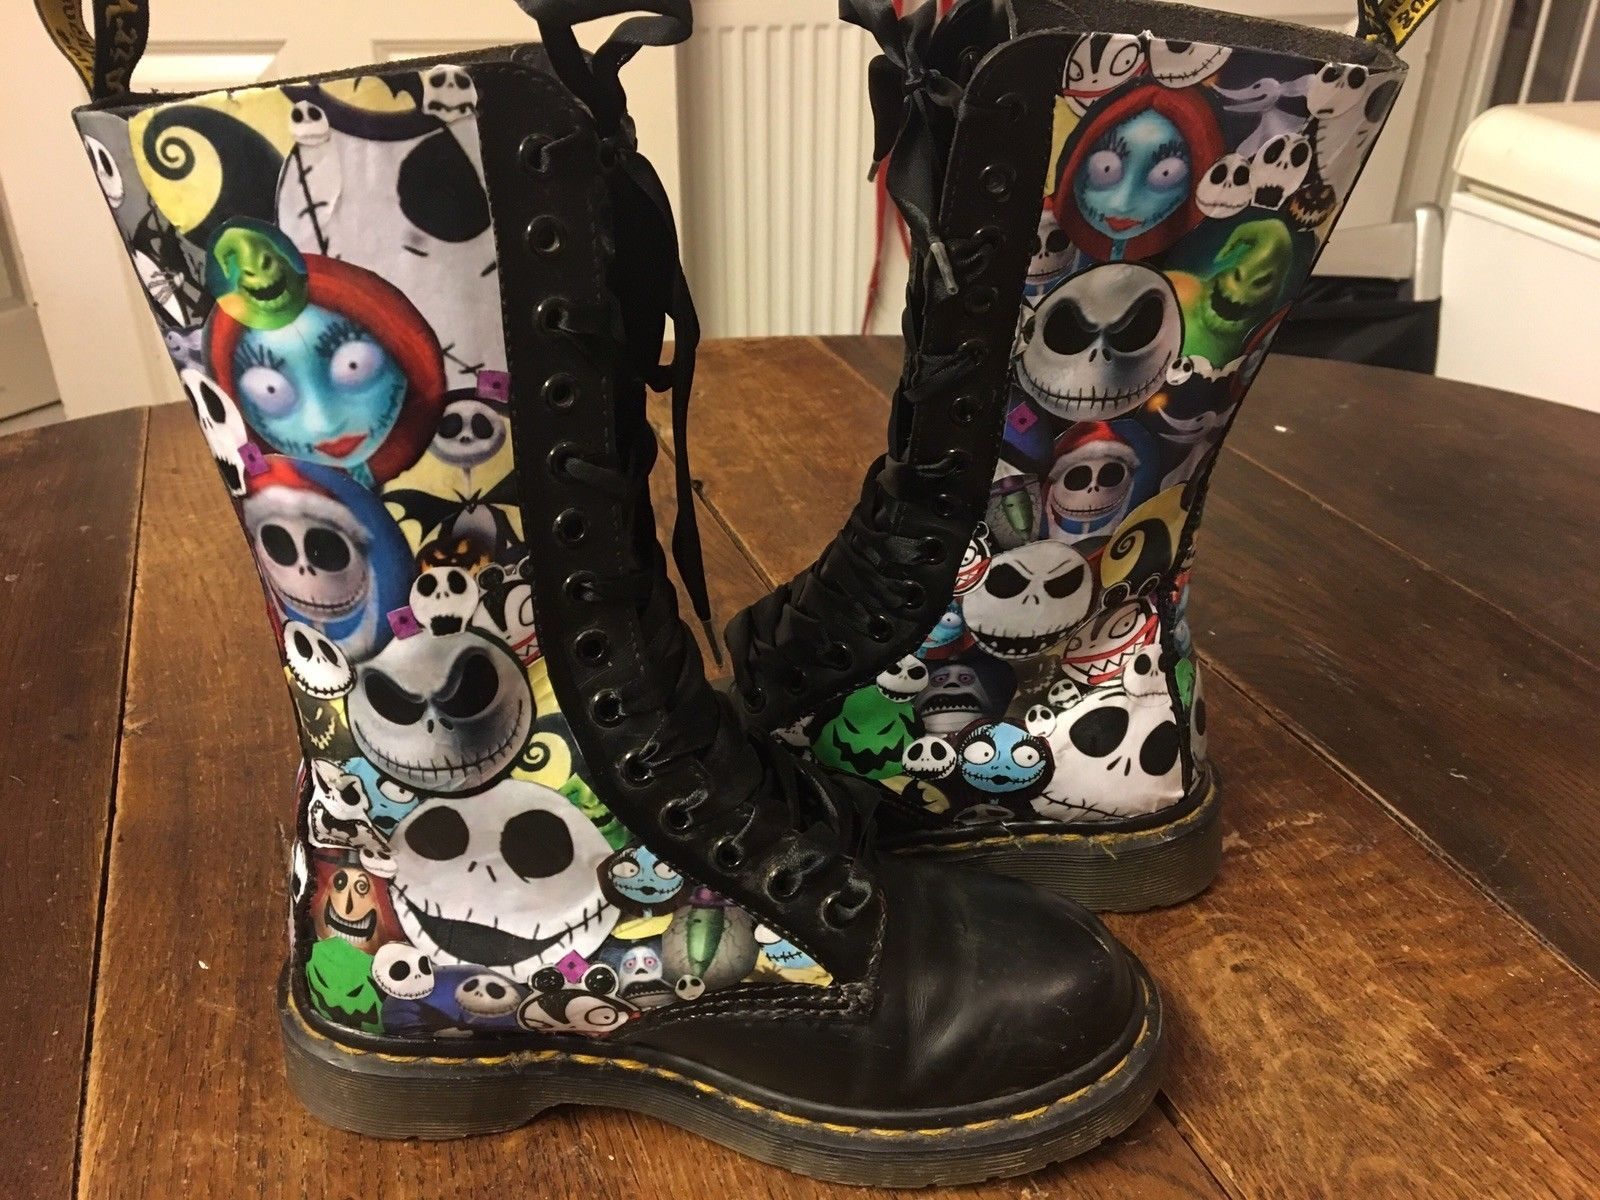 b25bb71d5b22 Nightmare Before Christmas Dr Martens 14 Hole Black Boots Size 4 Unique  Gothic